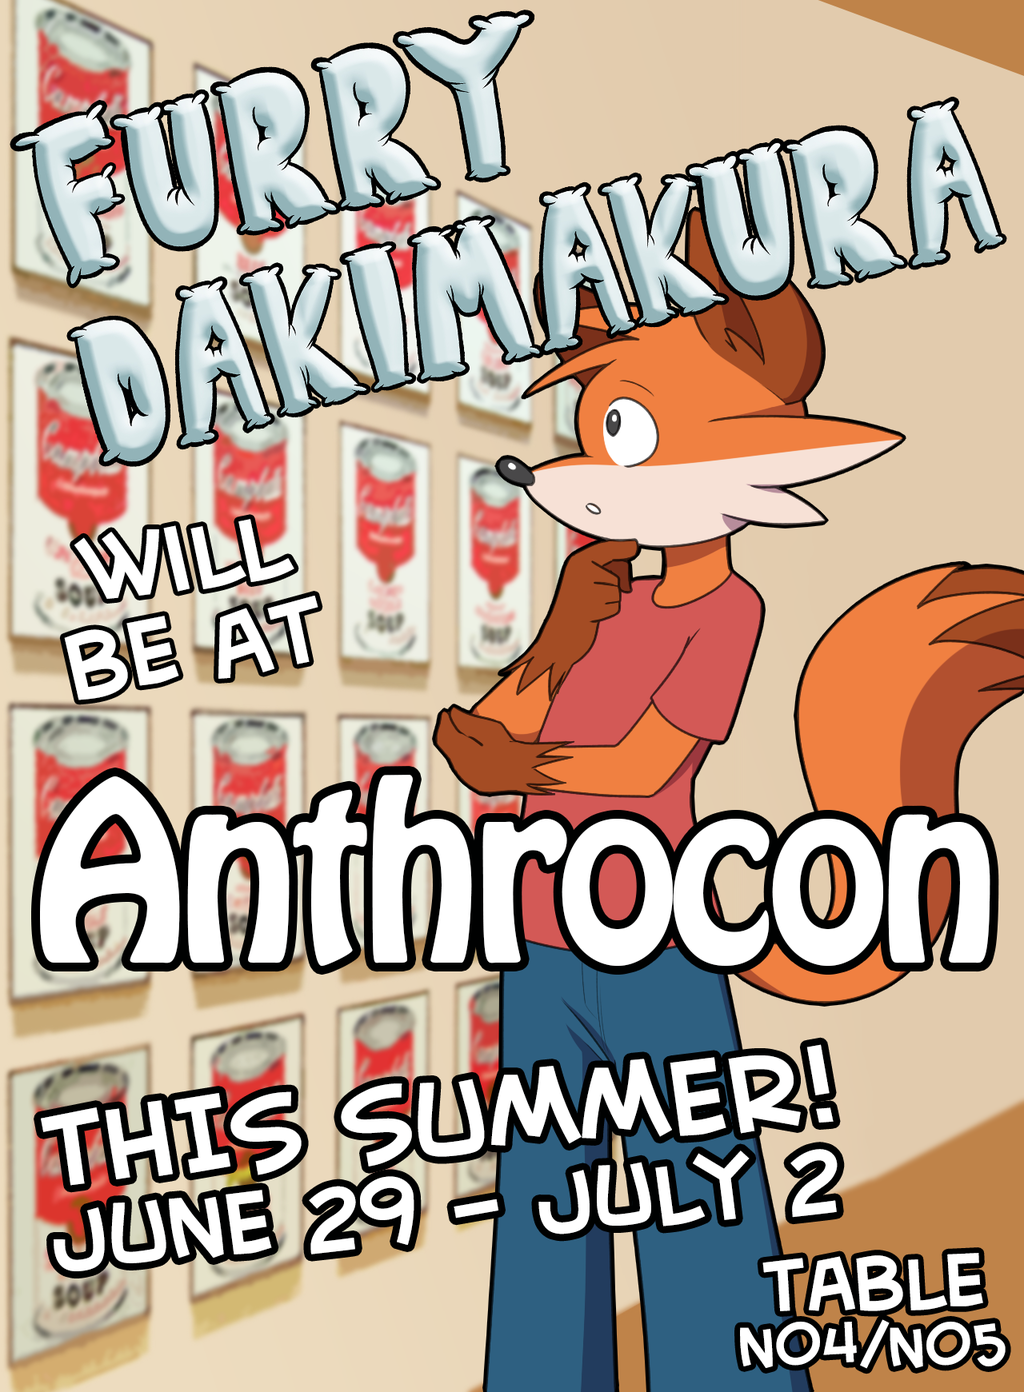 Most recent image: Furry Dakimakura will be at Anthrocon!